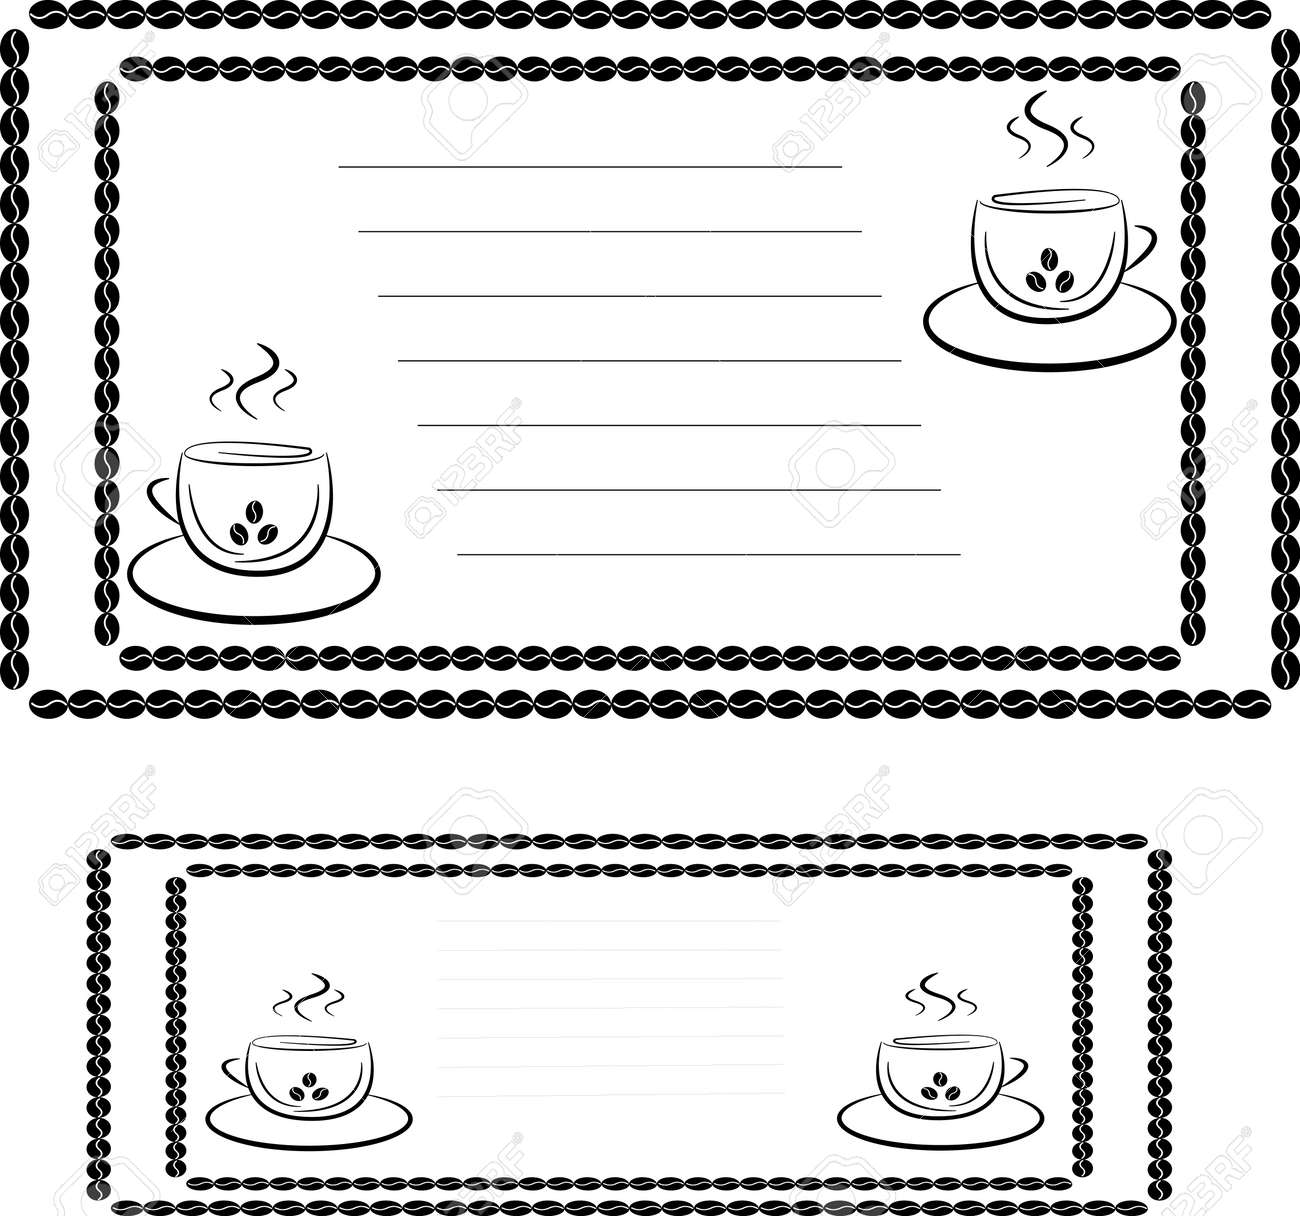 invitation template for a coffee house or cafe two cups and